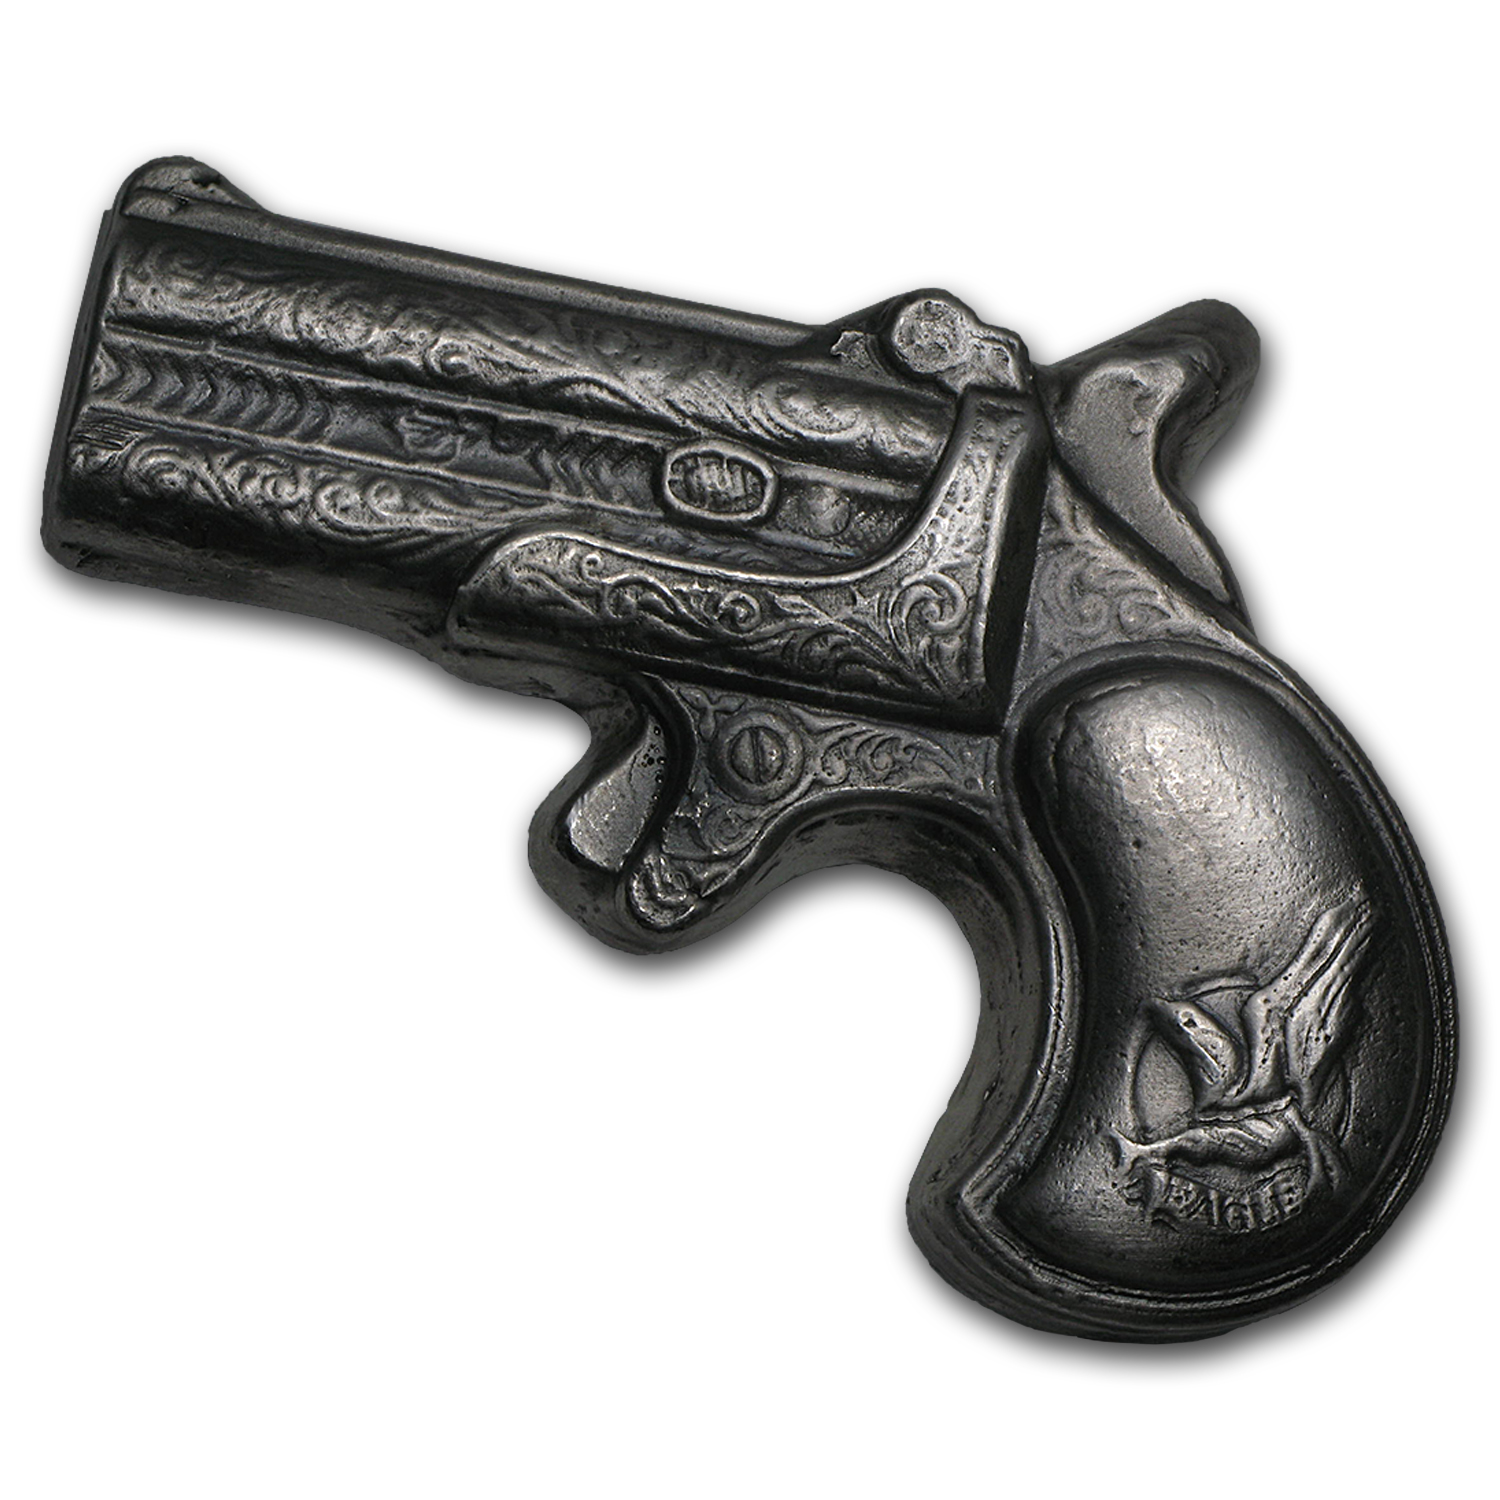 7 oz Silver Derringer Pistol - Bison Bullion